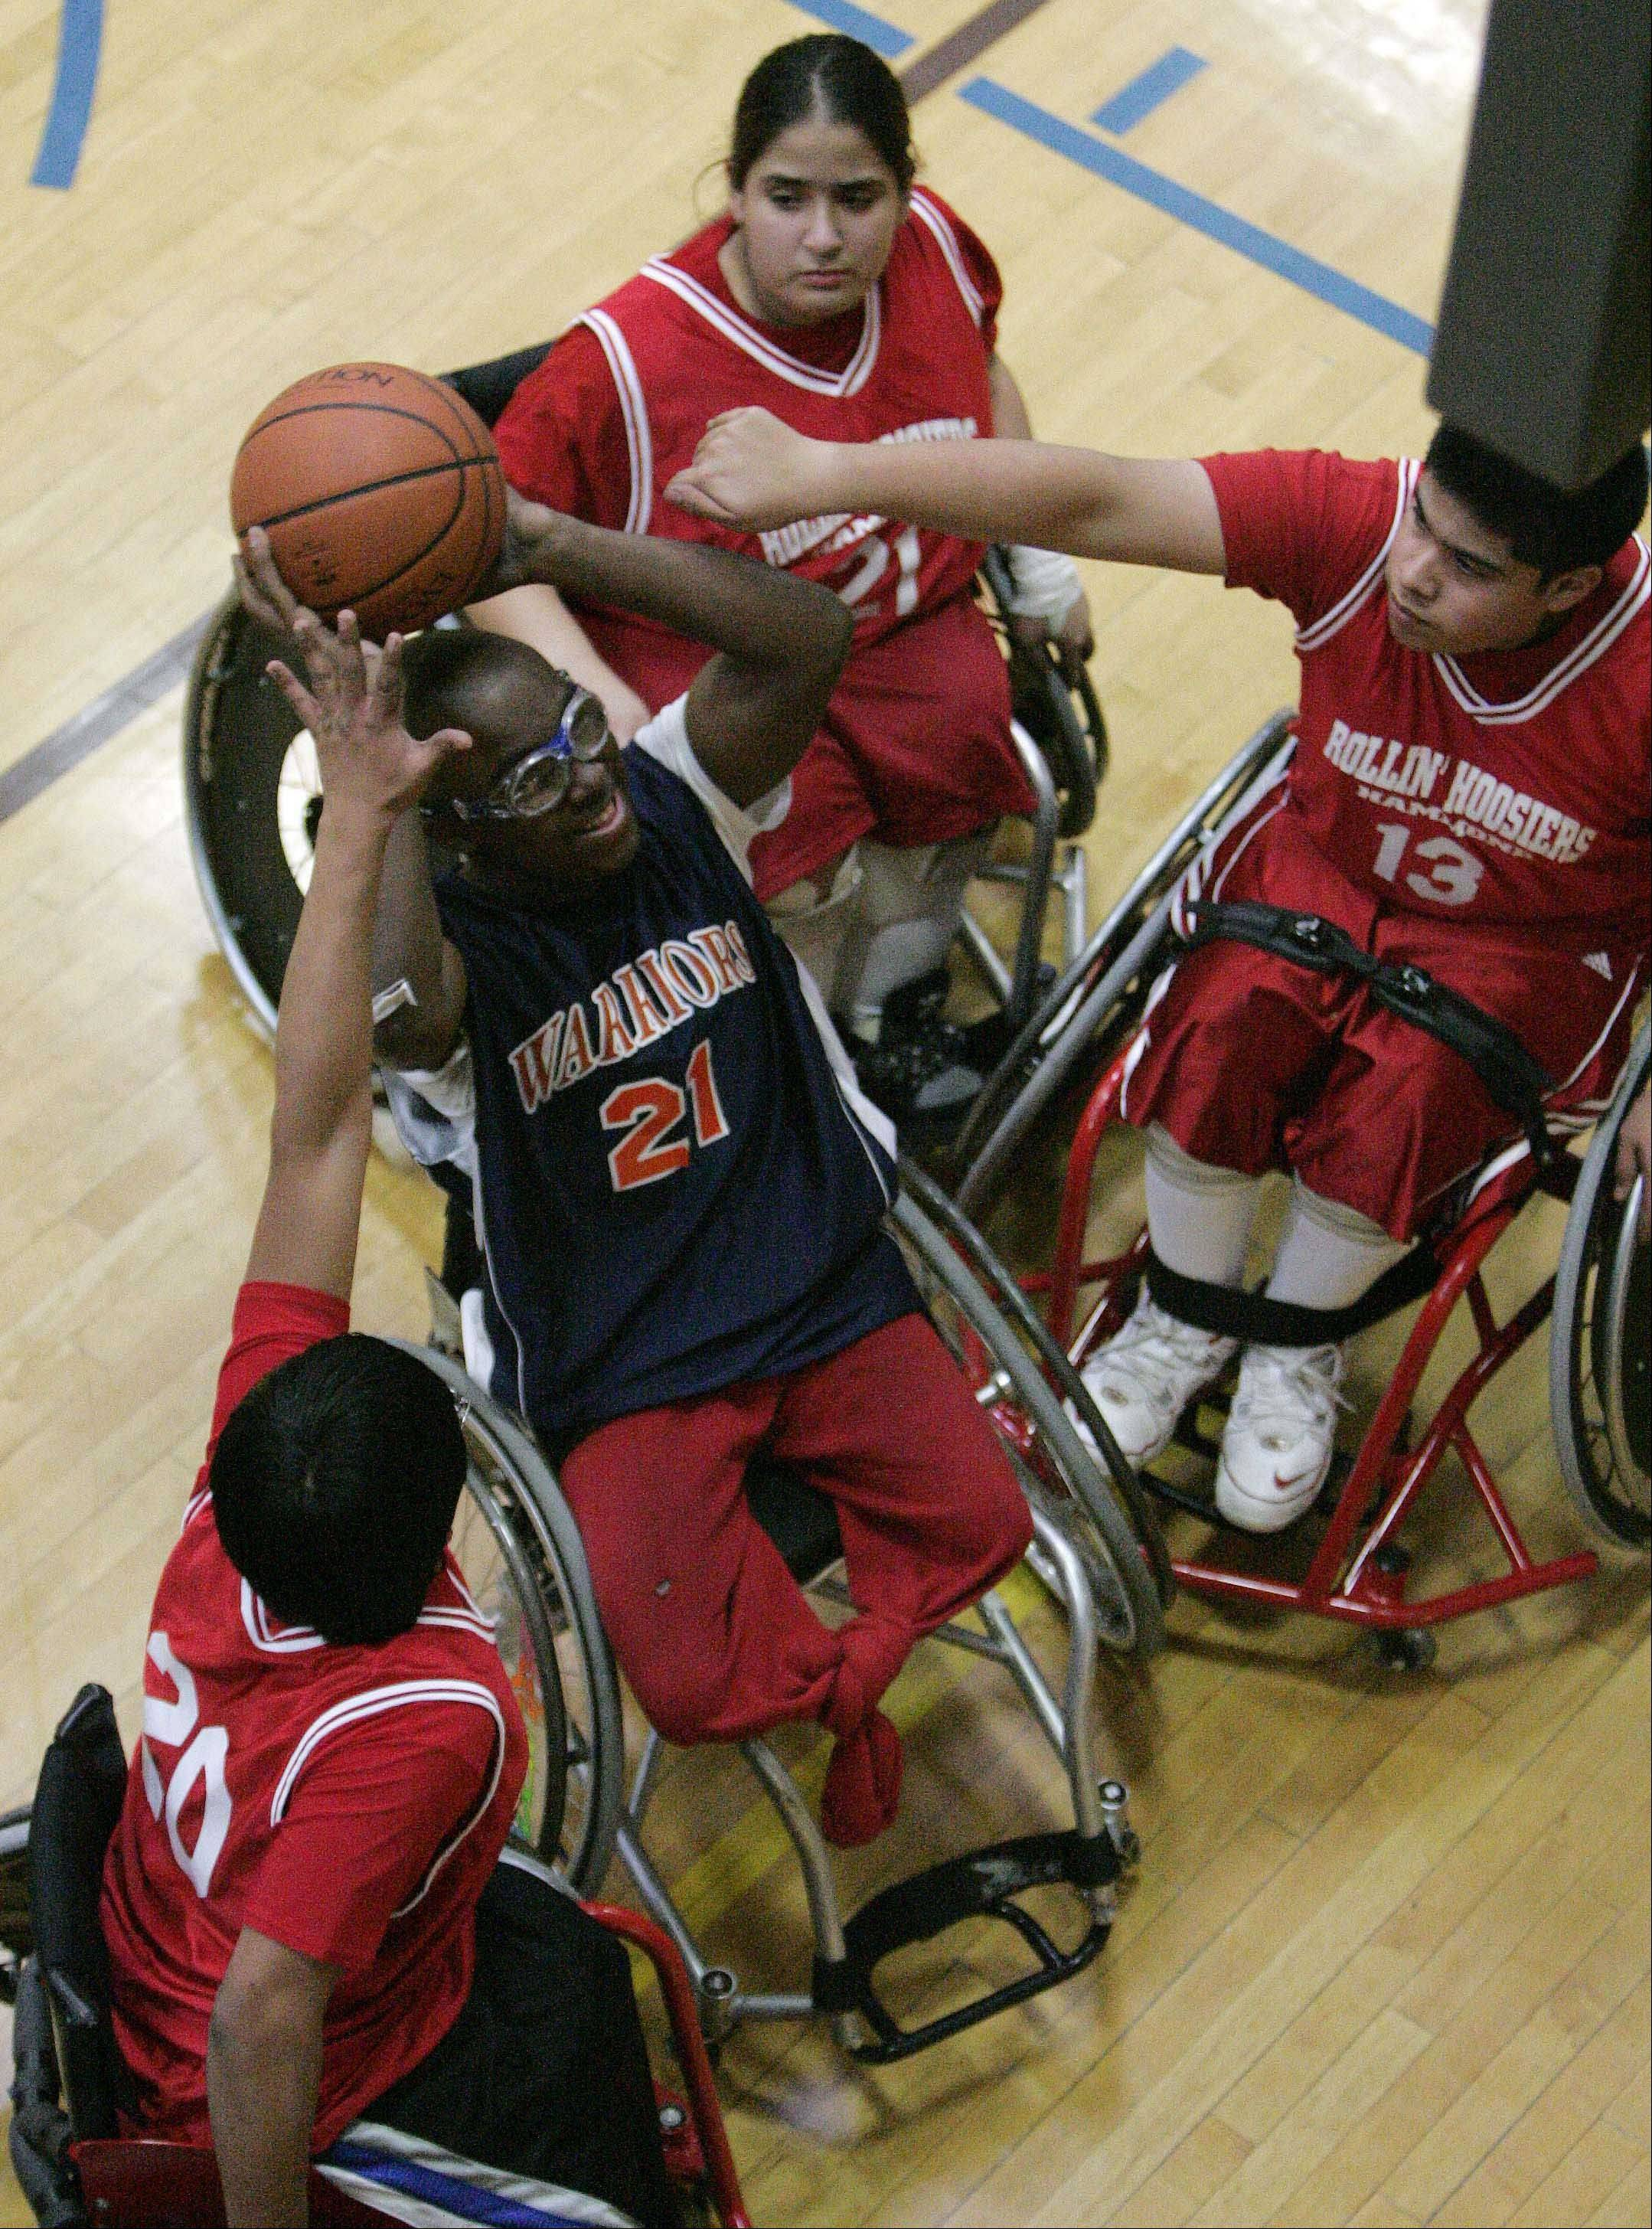 WDSRA programs like the Warriors wheelchair basketball team allow athletes with physical disabilities to compete, while other programs provide sports and leisure activities for children and adults with special needs.